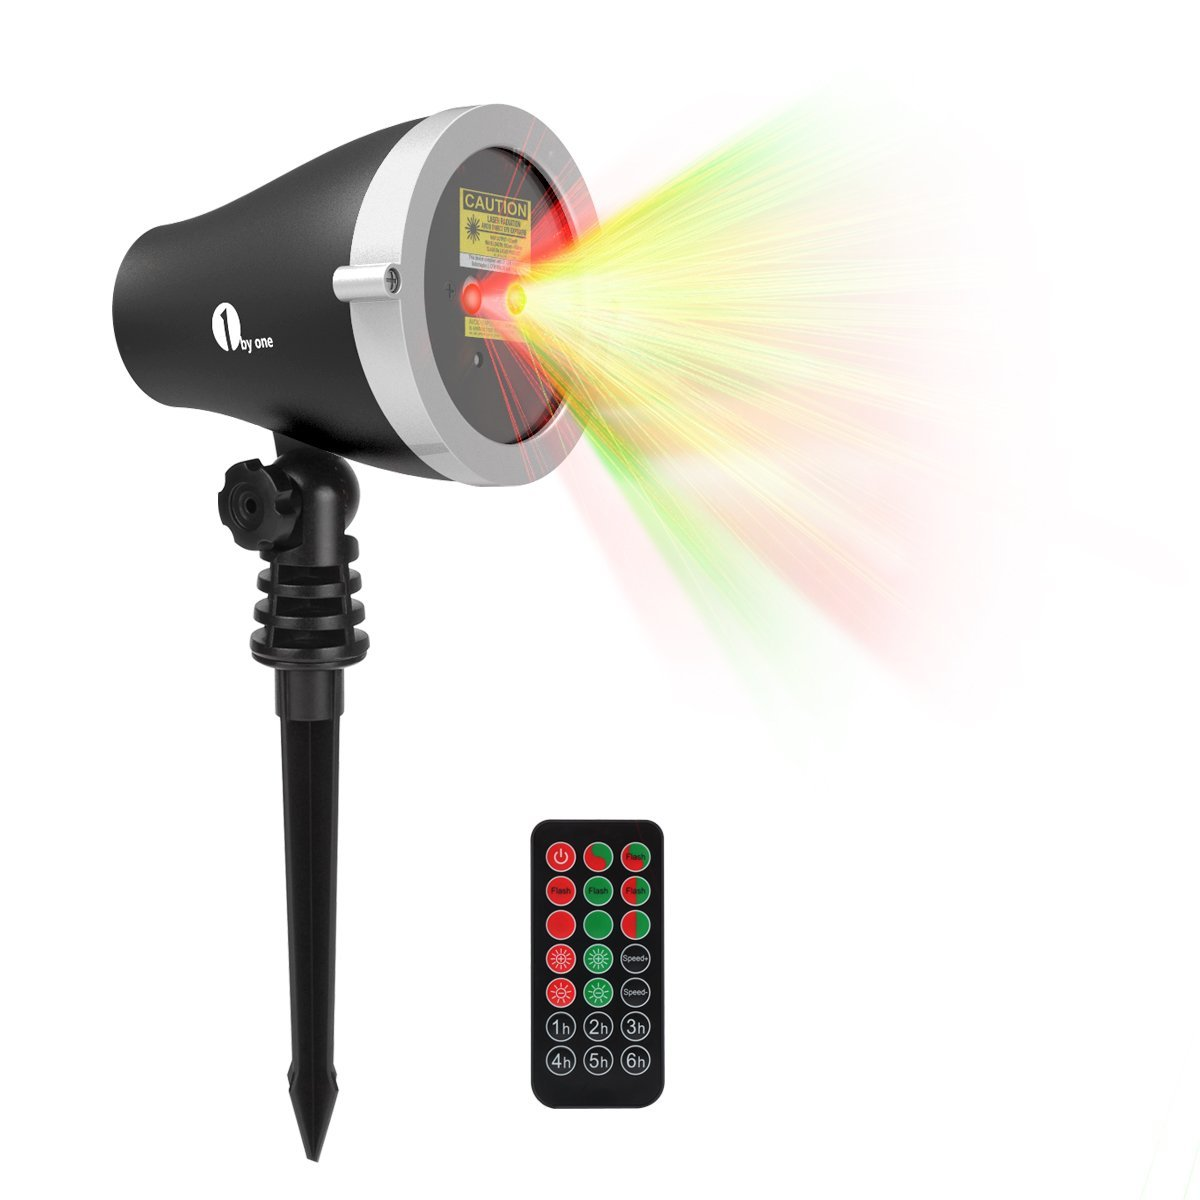 1byone Christmas Outdoor Laser Lights